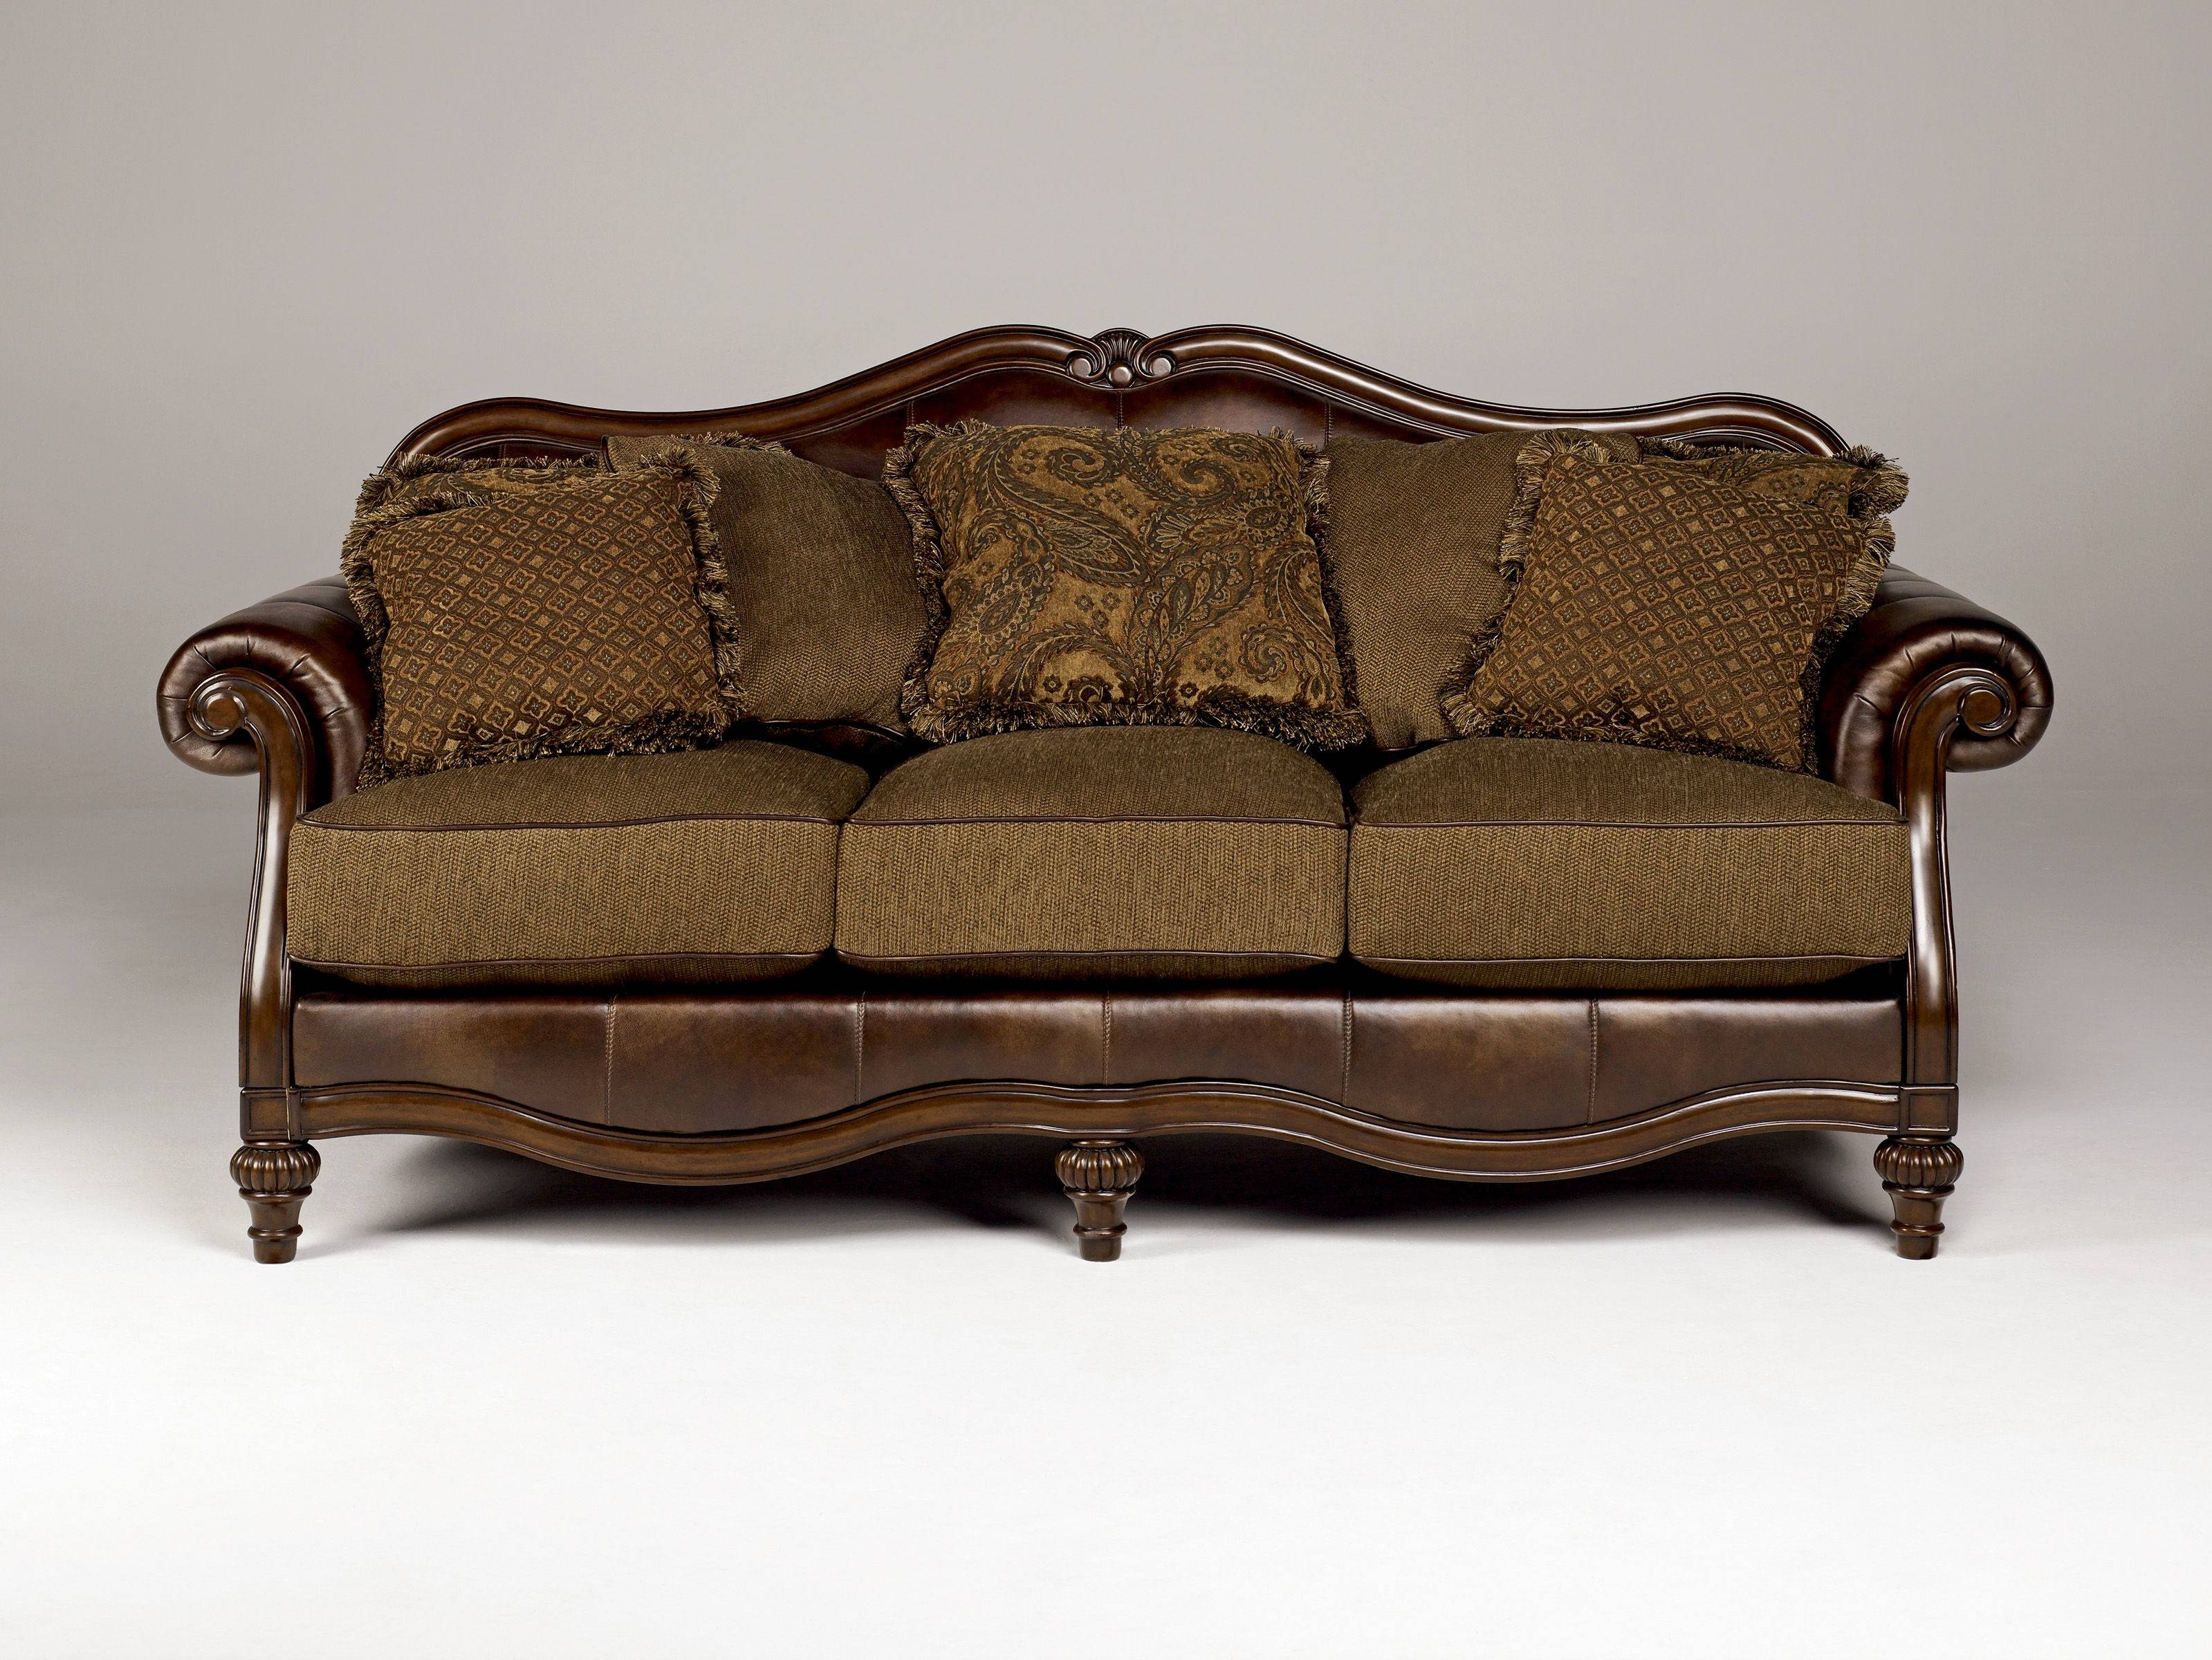 Claremore Traditional Antique Fabric Sofa W/pillow Back | Living pertaining to Traditional Fabric Sofas (Image 5 of 30)